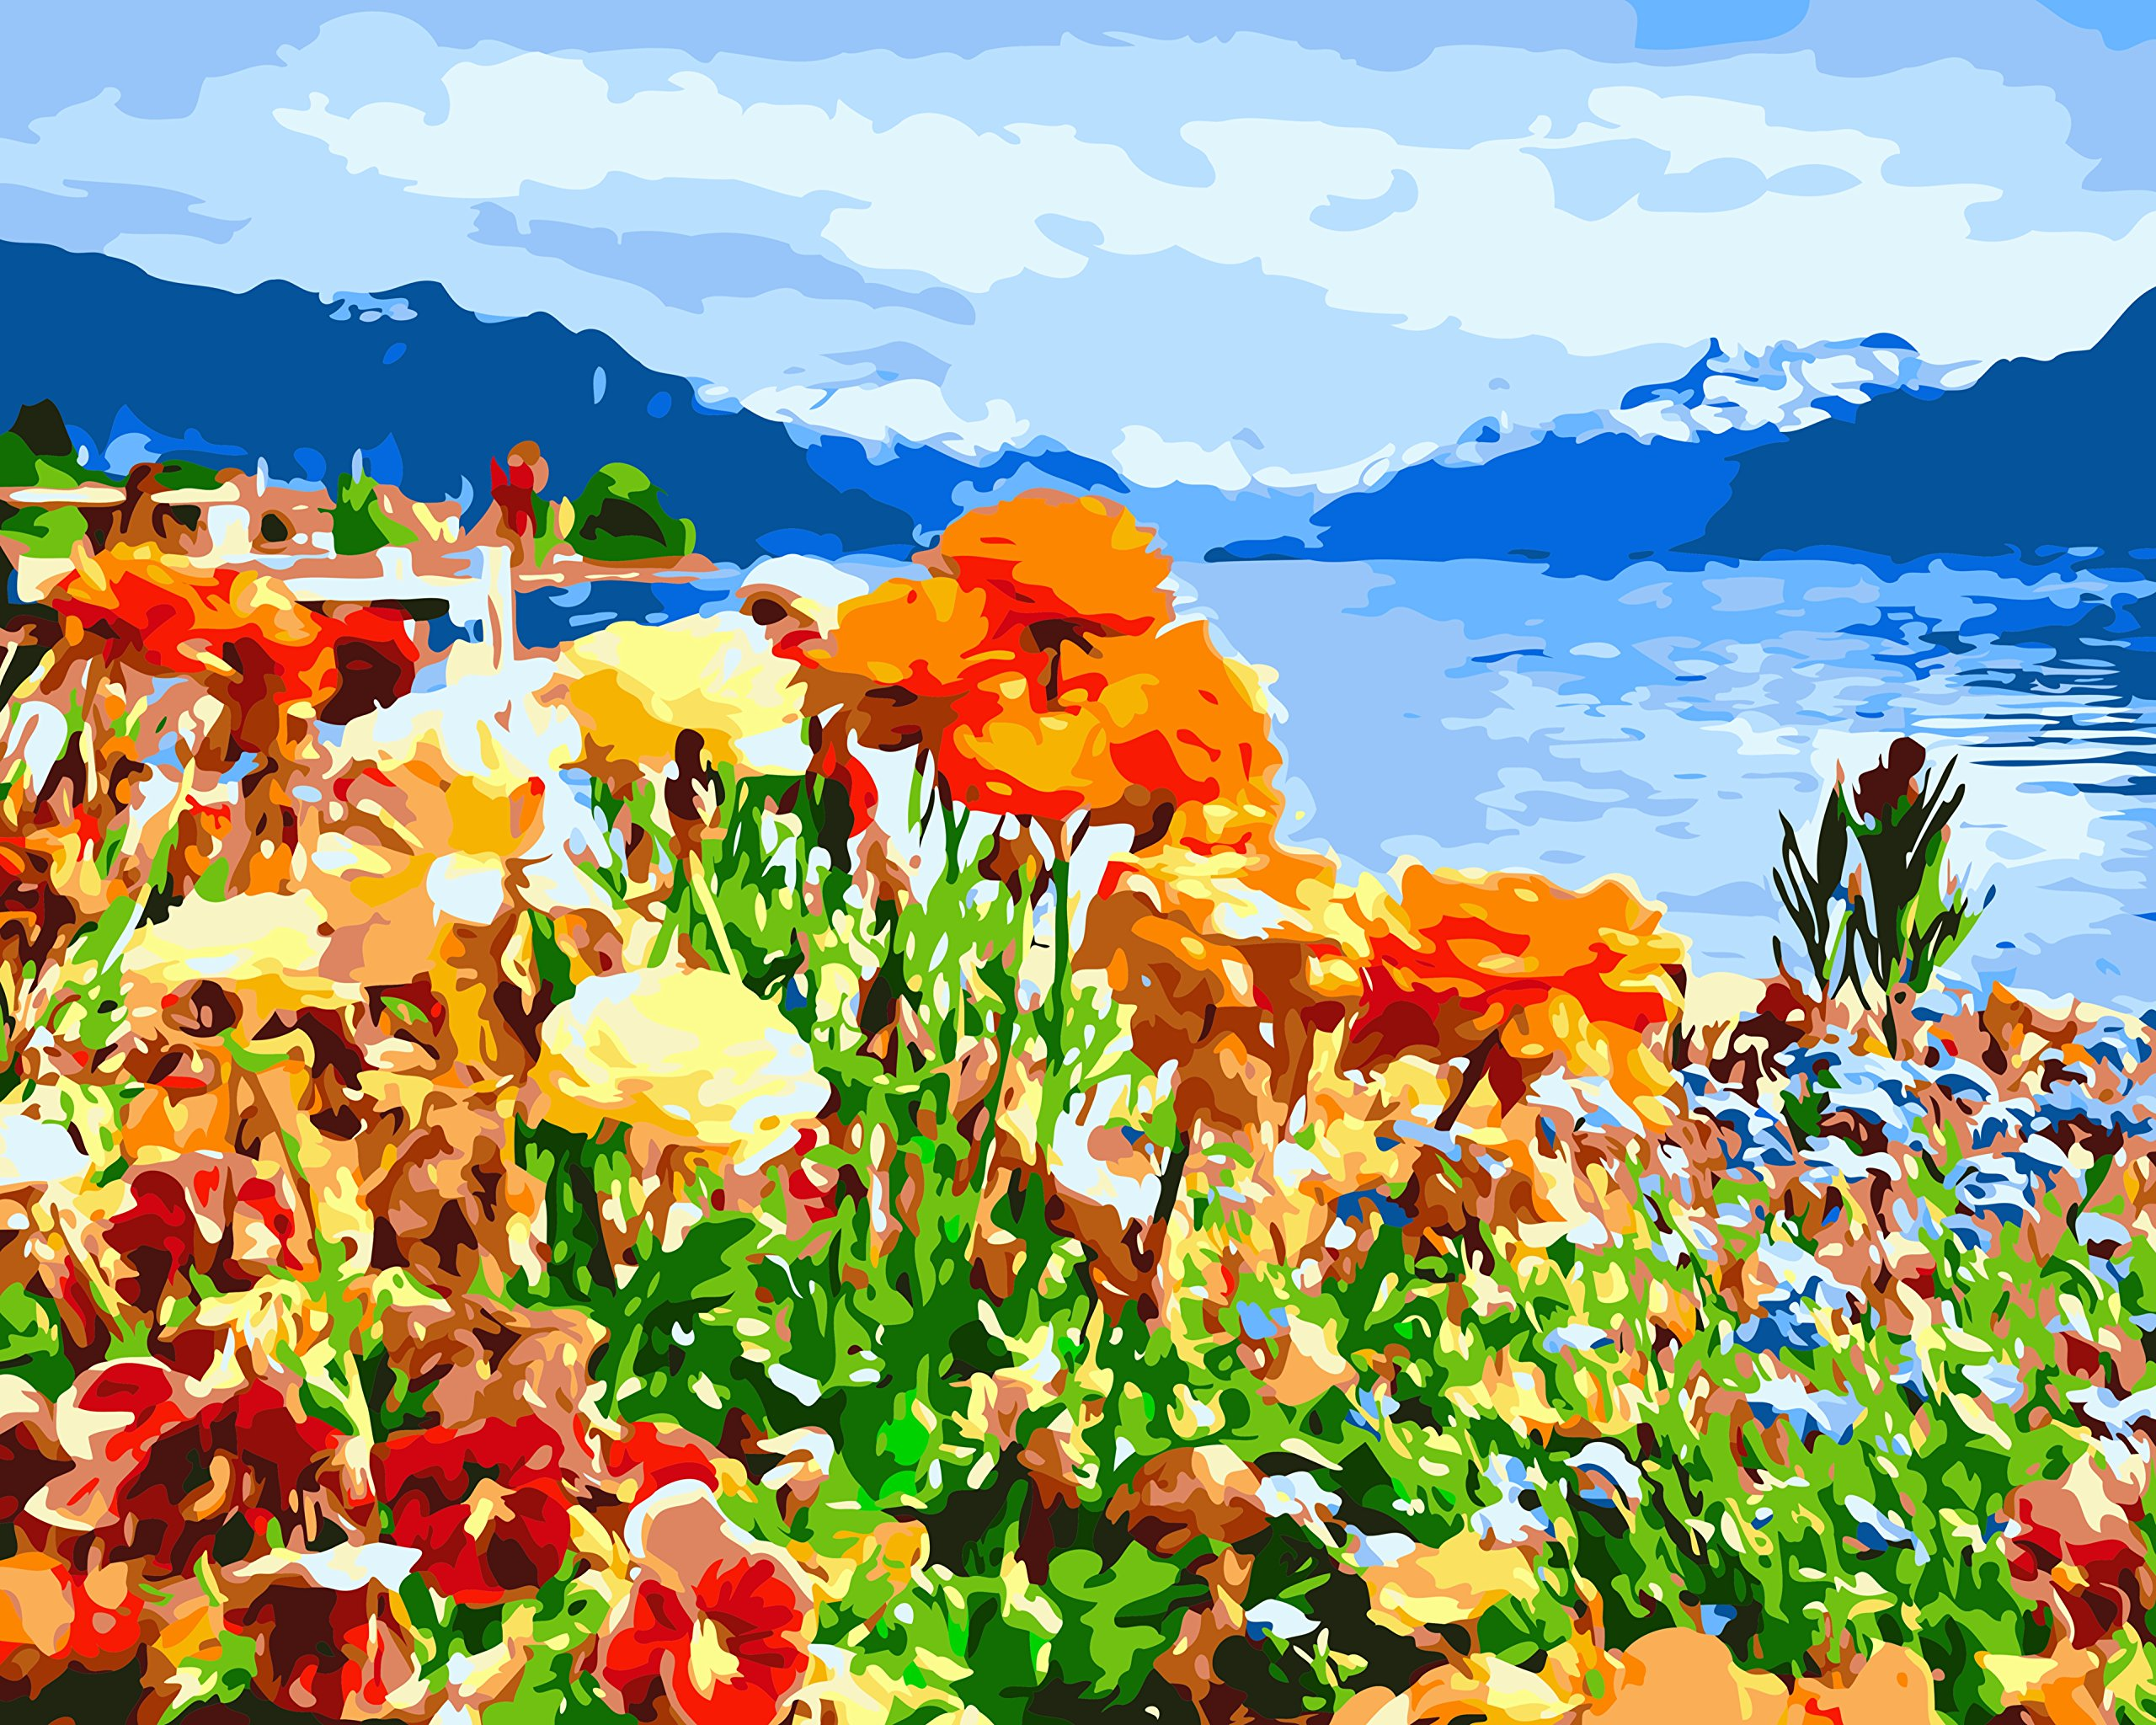 Wildflower Lake Paint by Numbers for Adults DIY Acrylic Painting Kit by MaileKai Creates, 16x20 inches, Wooden Framed Linen Canvas, 4 Professional Brushes